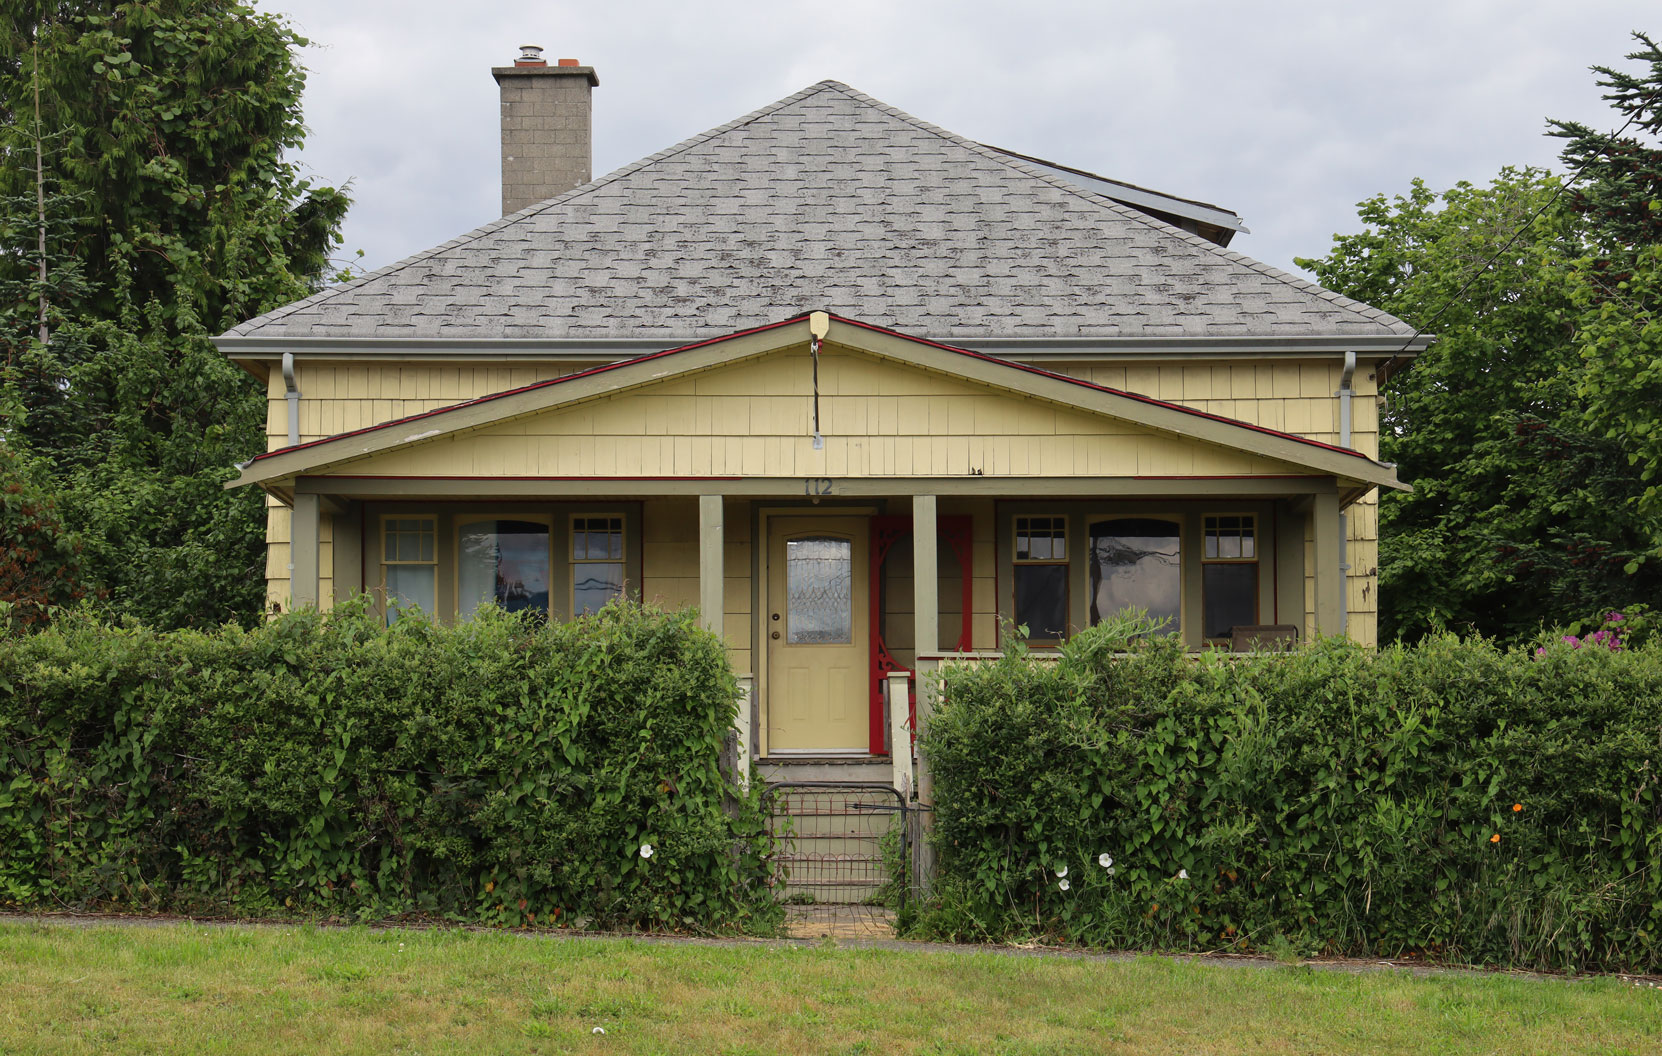 112 Methuen Street, Ladysmith, BC, built in 1910,